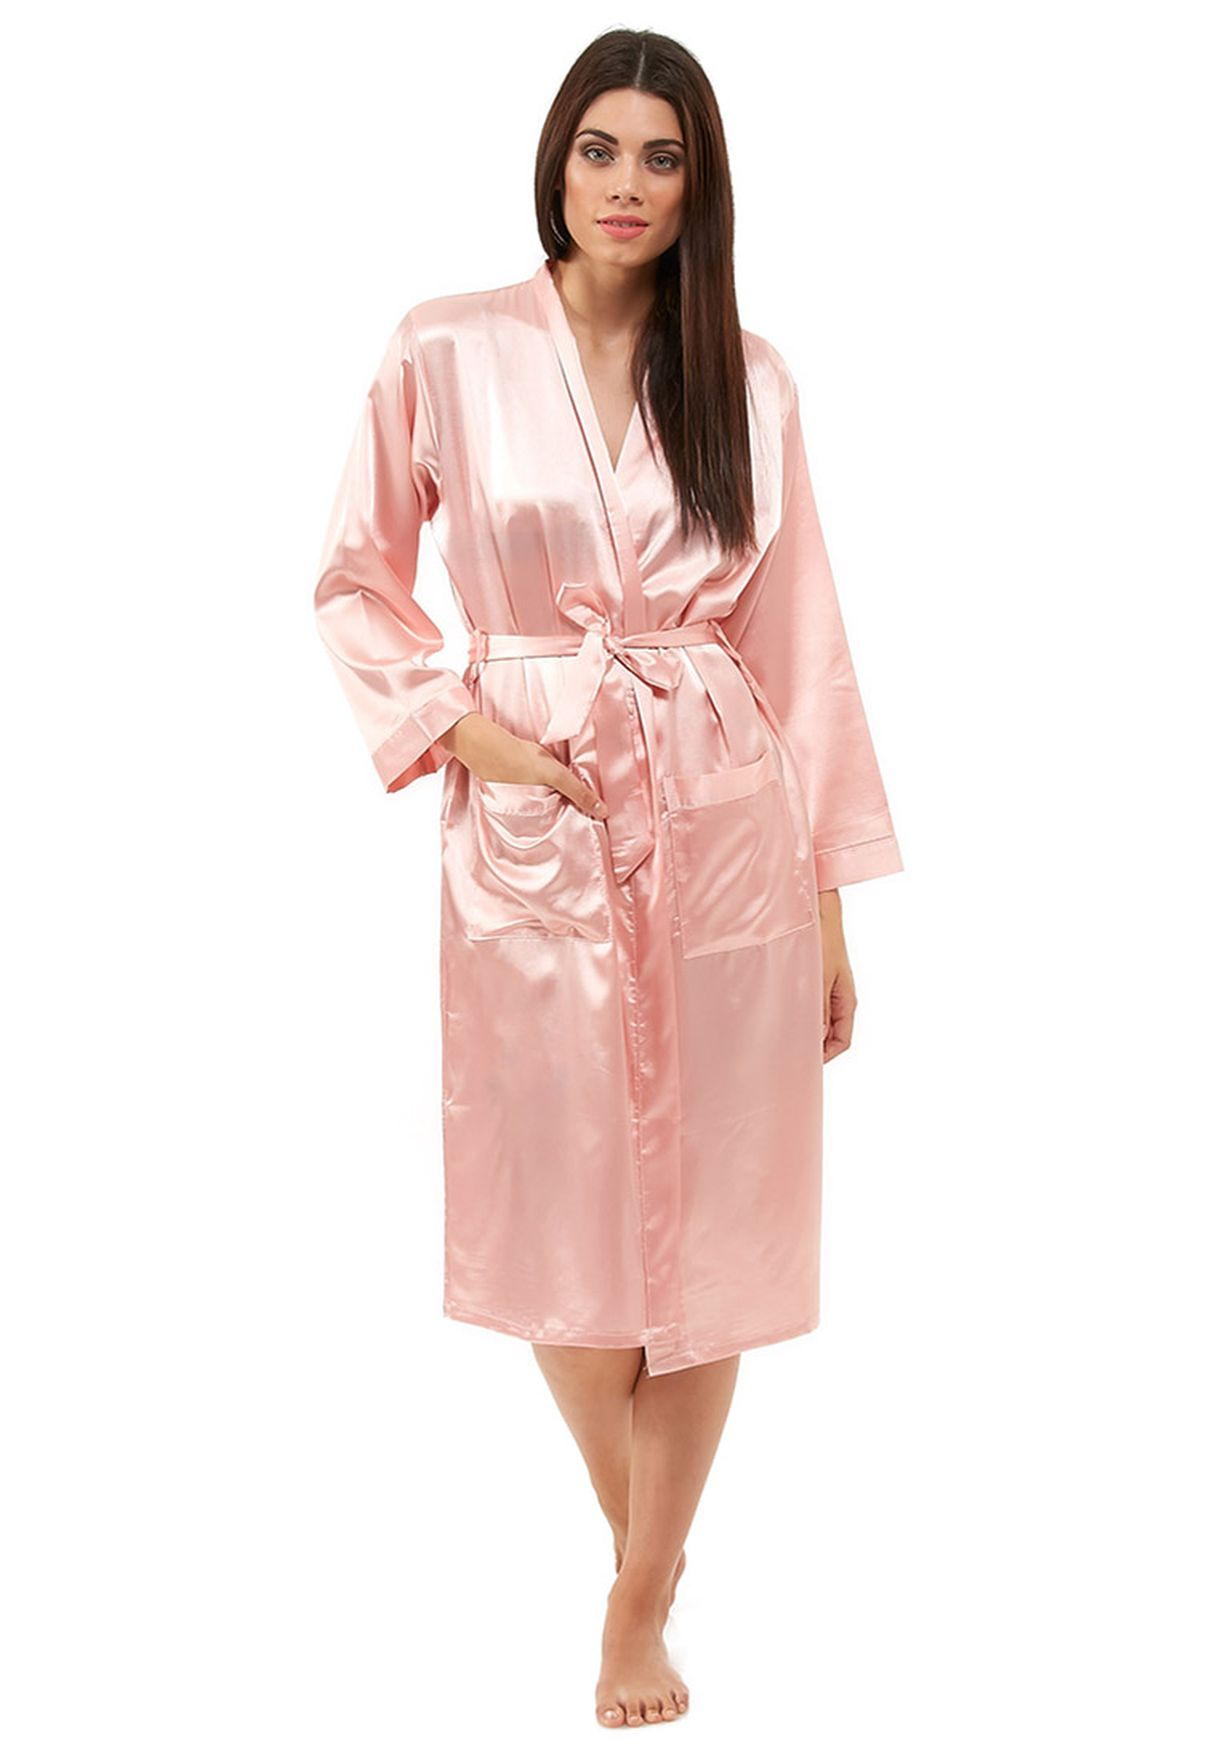 Buy Pink Satin Bathrobe For Women In Muscat Other Cities